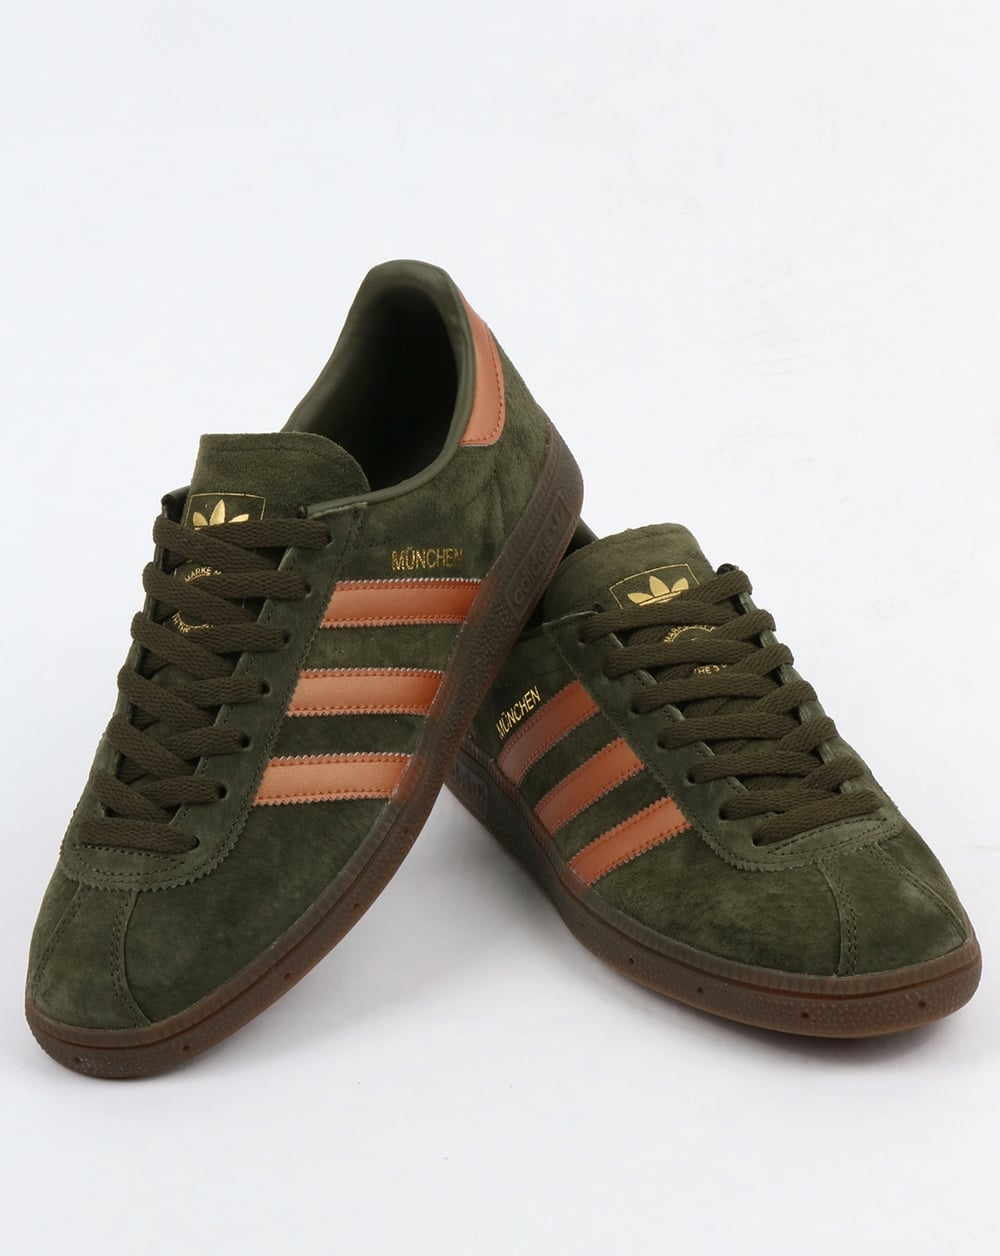 new arrival incredible prices best prices Adidas Munchen Trainers Night Cargo/Bronze